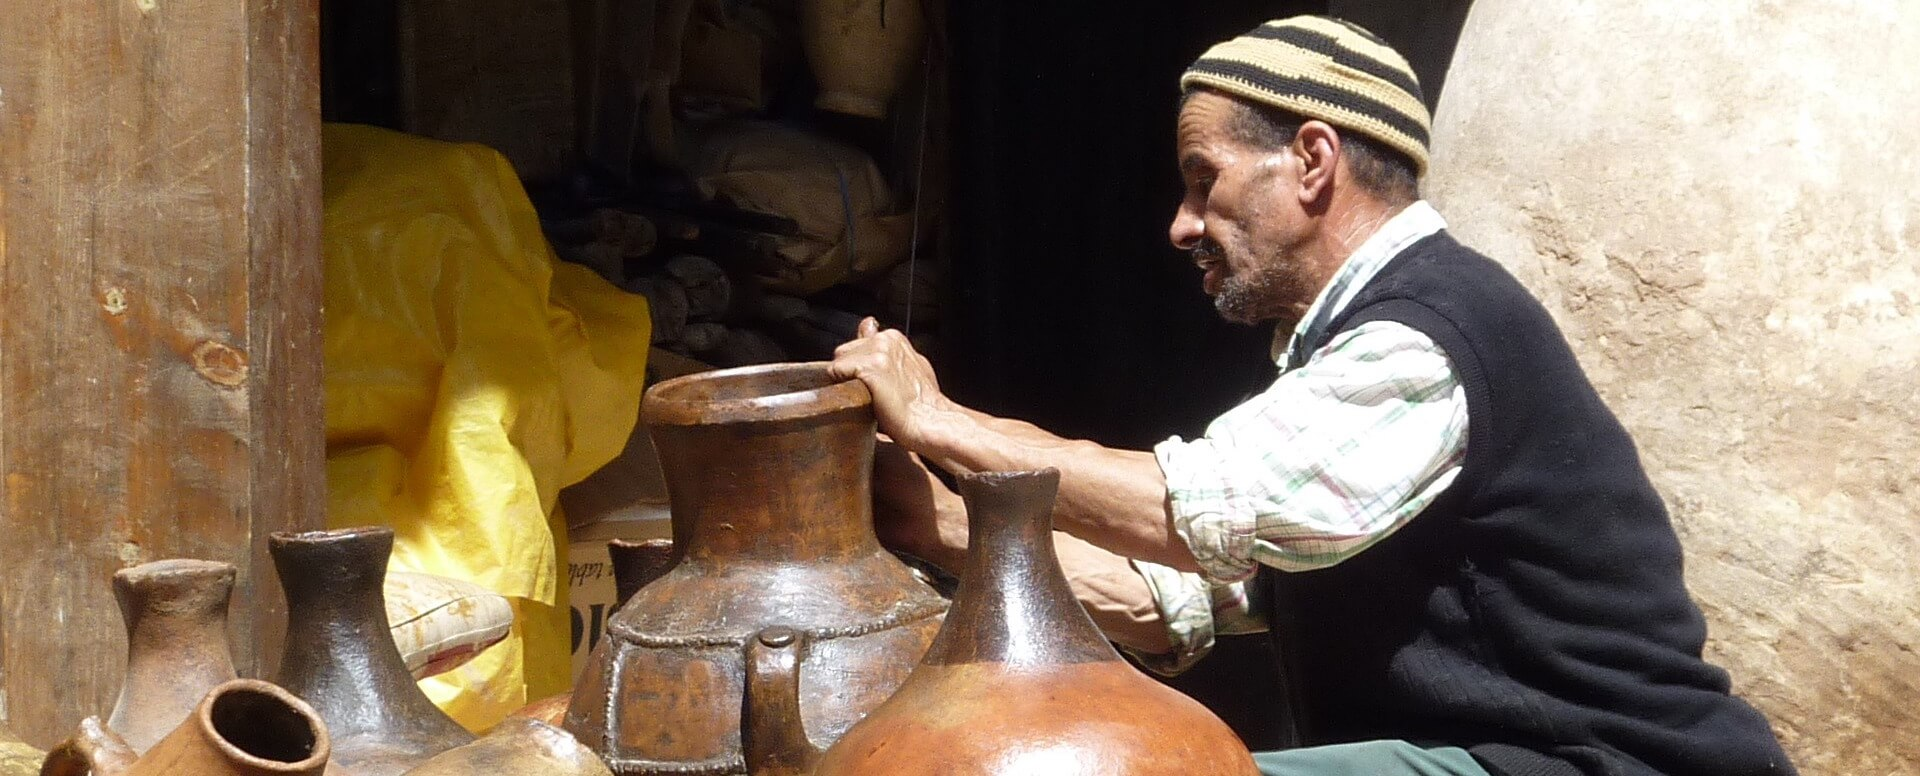 Moroccan culture and traditions - Morocco